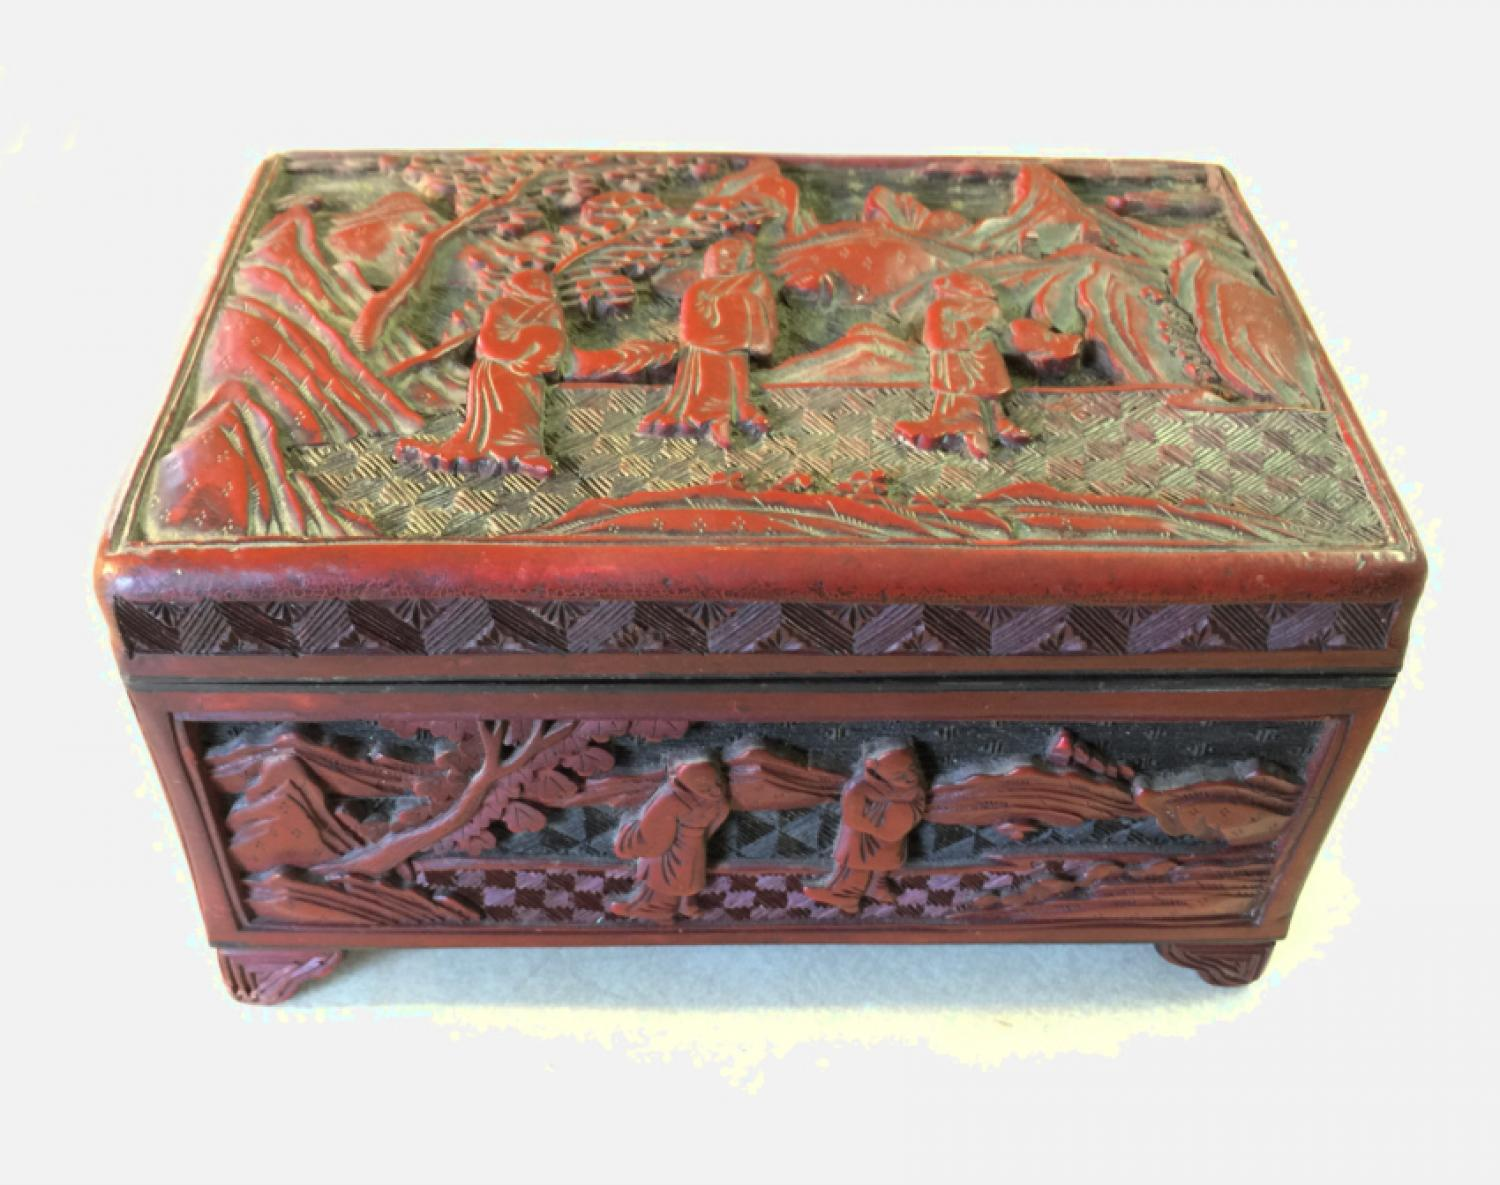 Antique 19th century Chinese Cinnabar storage box